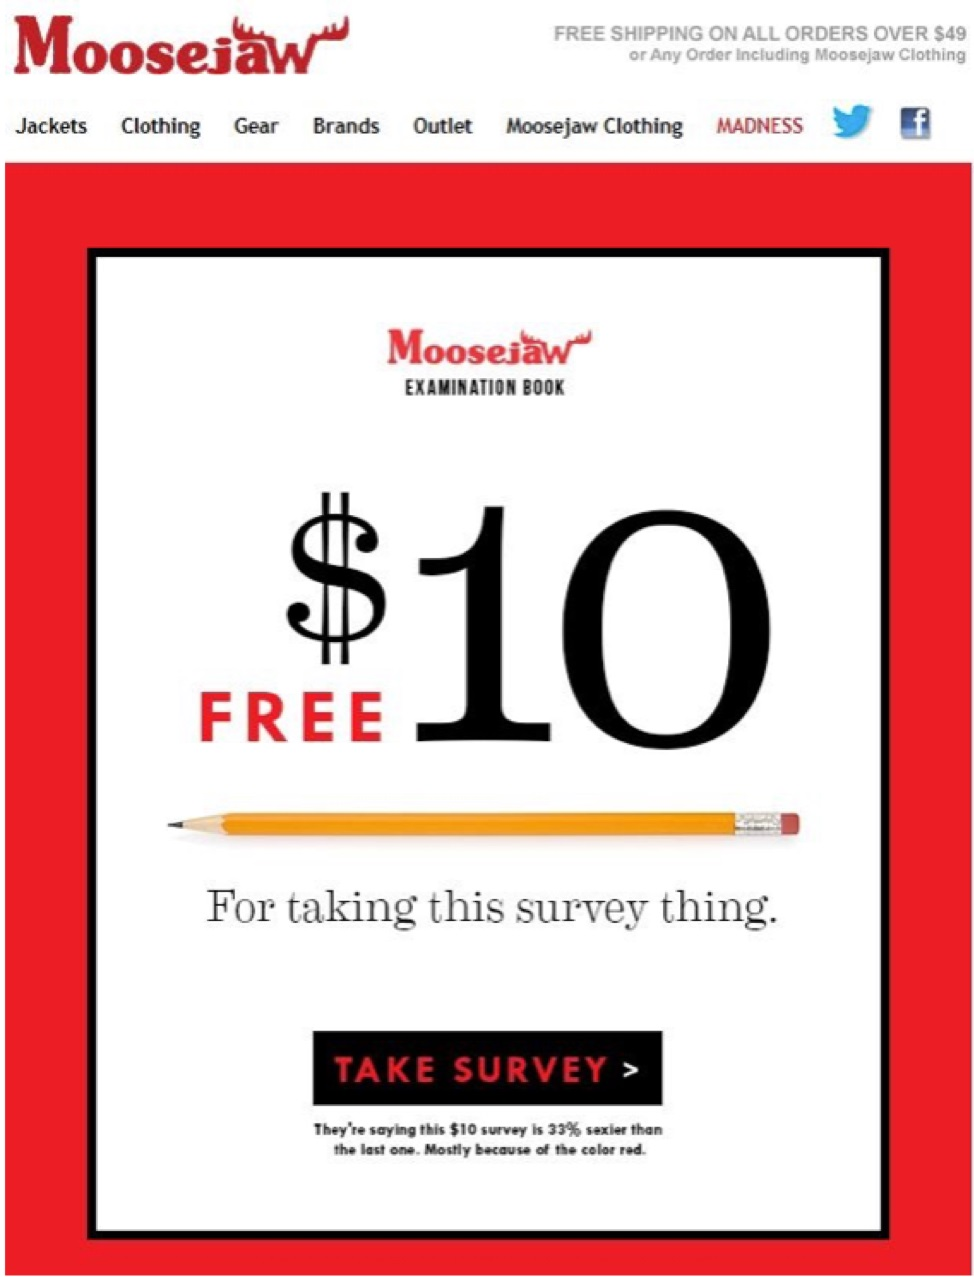 Personalized Feedback Email by Moosejaw | WebEngage